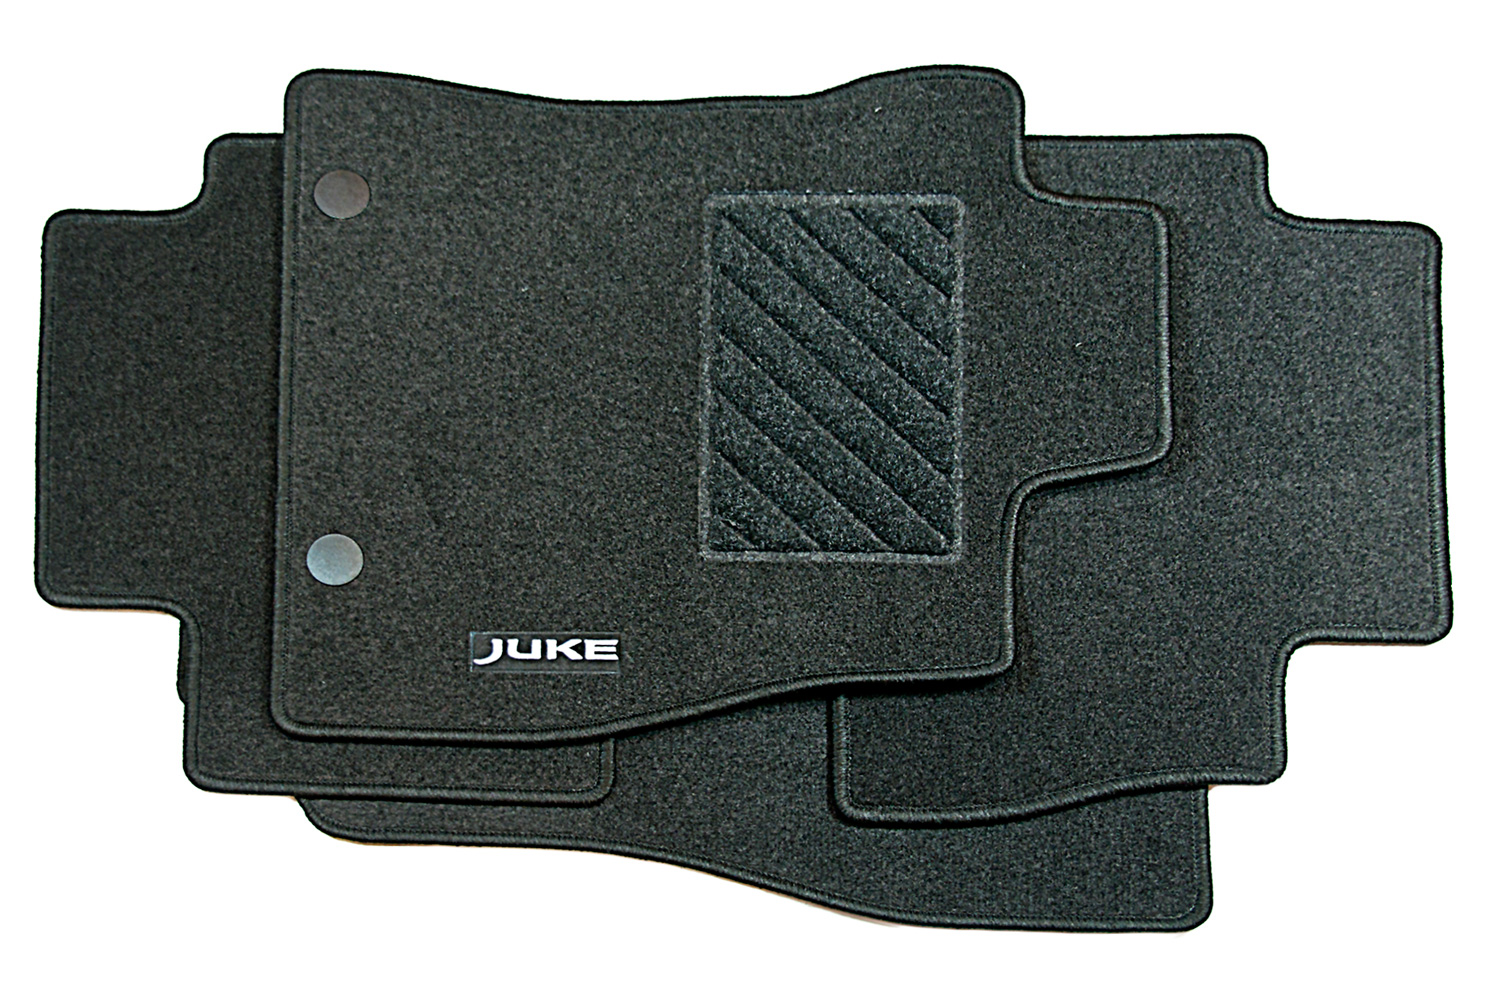 4x nissan genuine juke car floor mats tailored front rear